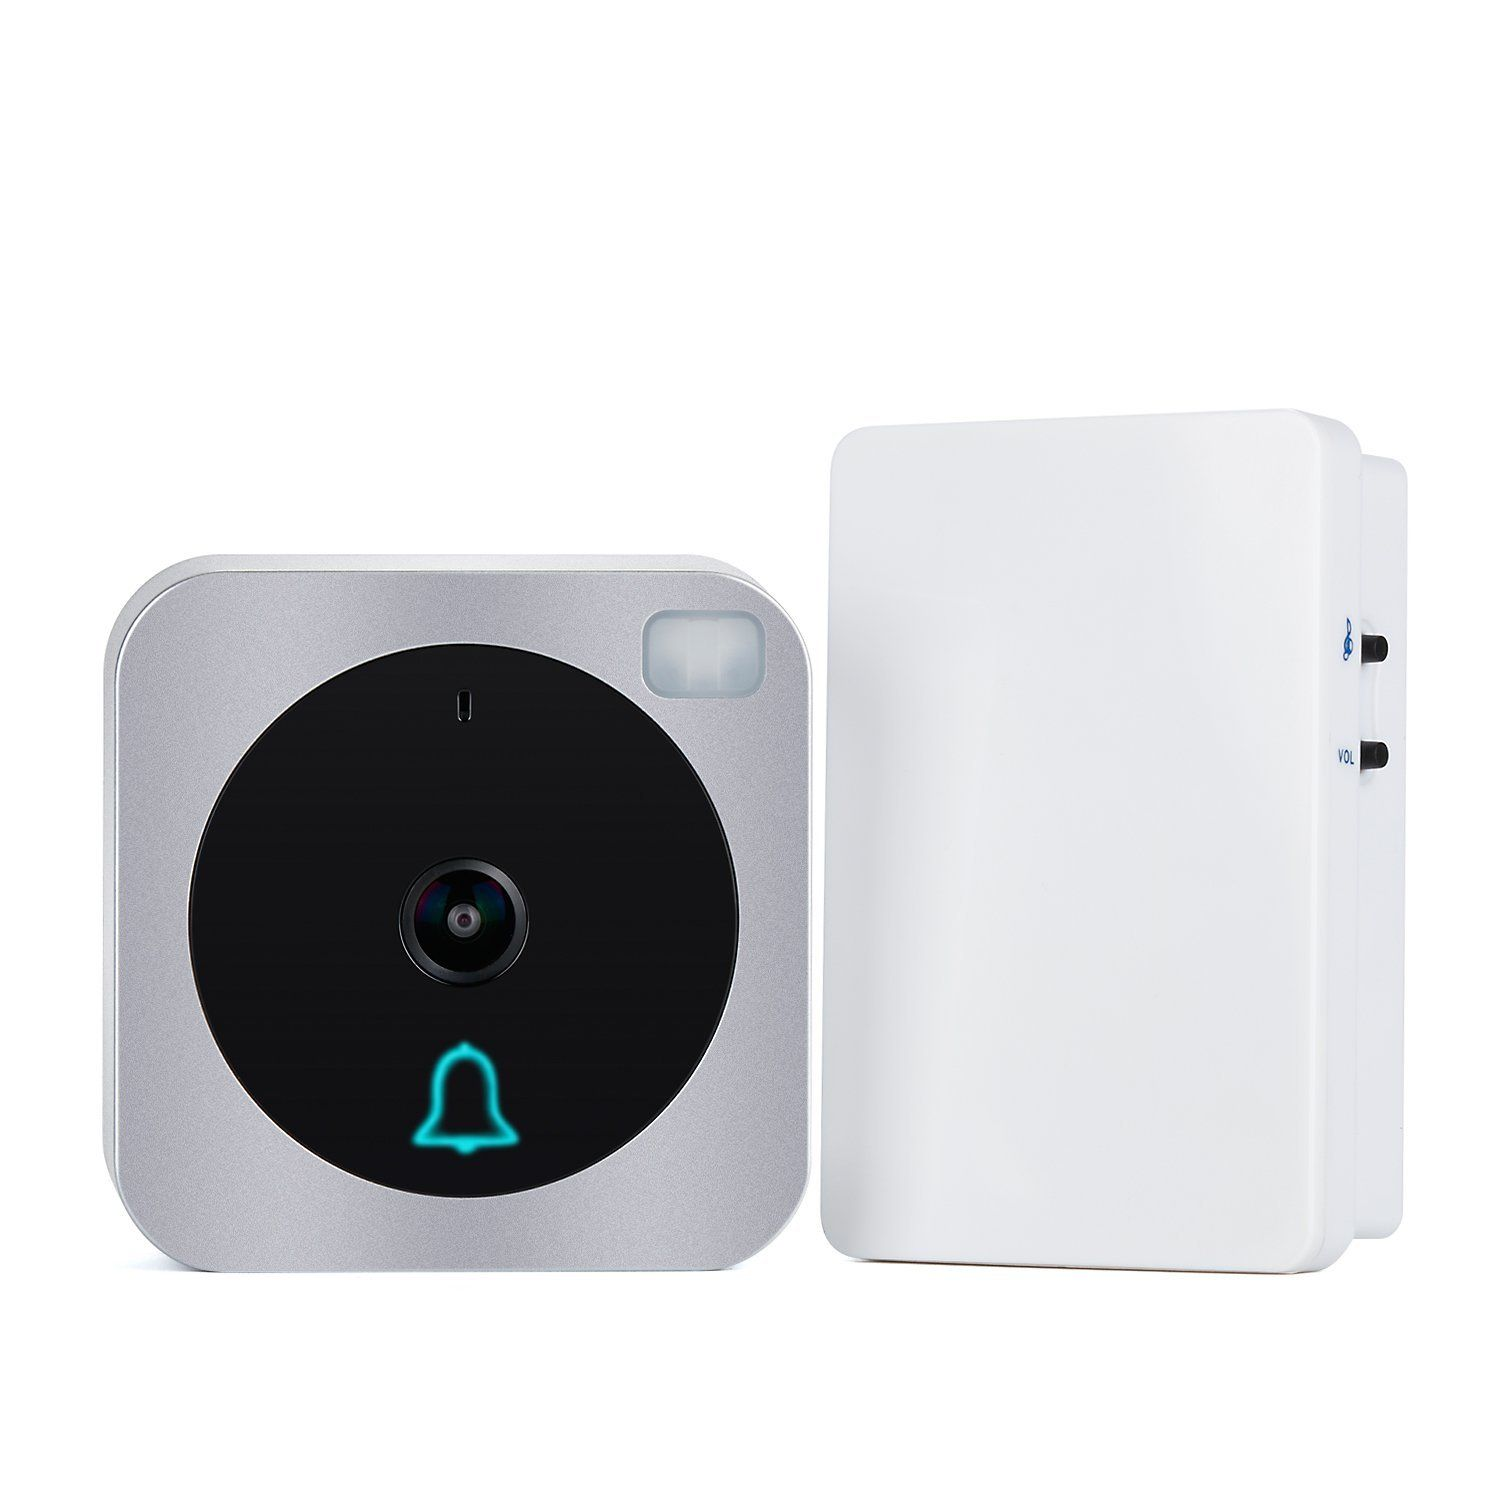 Amazon.com Vuebell Wifi Video Doorbell Wireless Video Intercom Doorbell with Motion Detection  sc 1 st  Pinterest & Amazon.com: Vuebell Wifi Video Doorbell Wireless Video Intercom ...